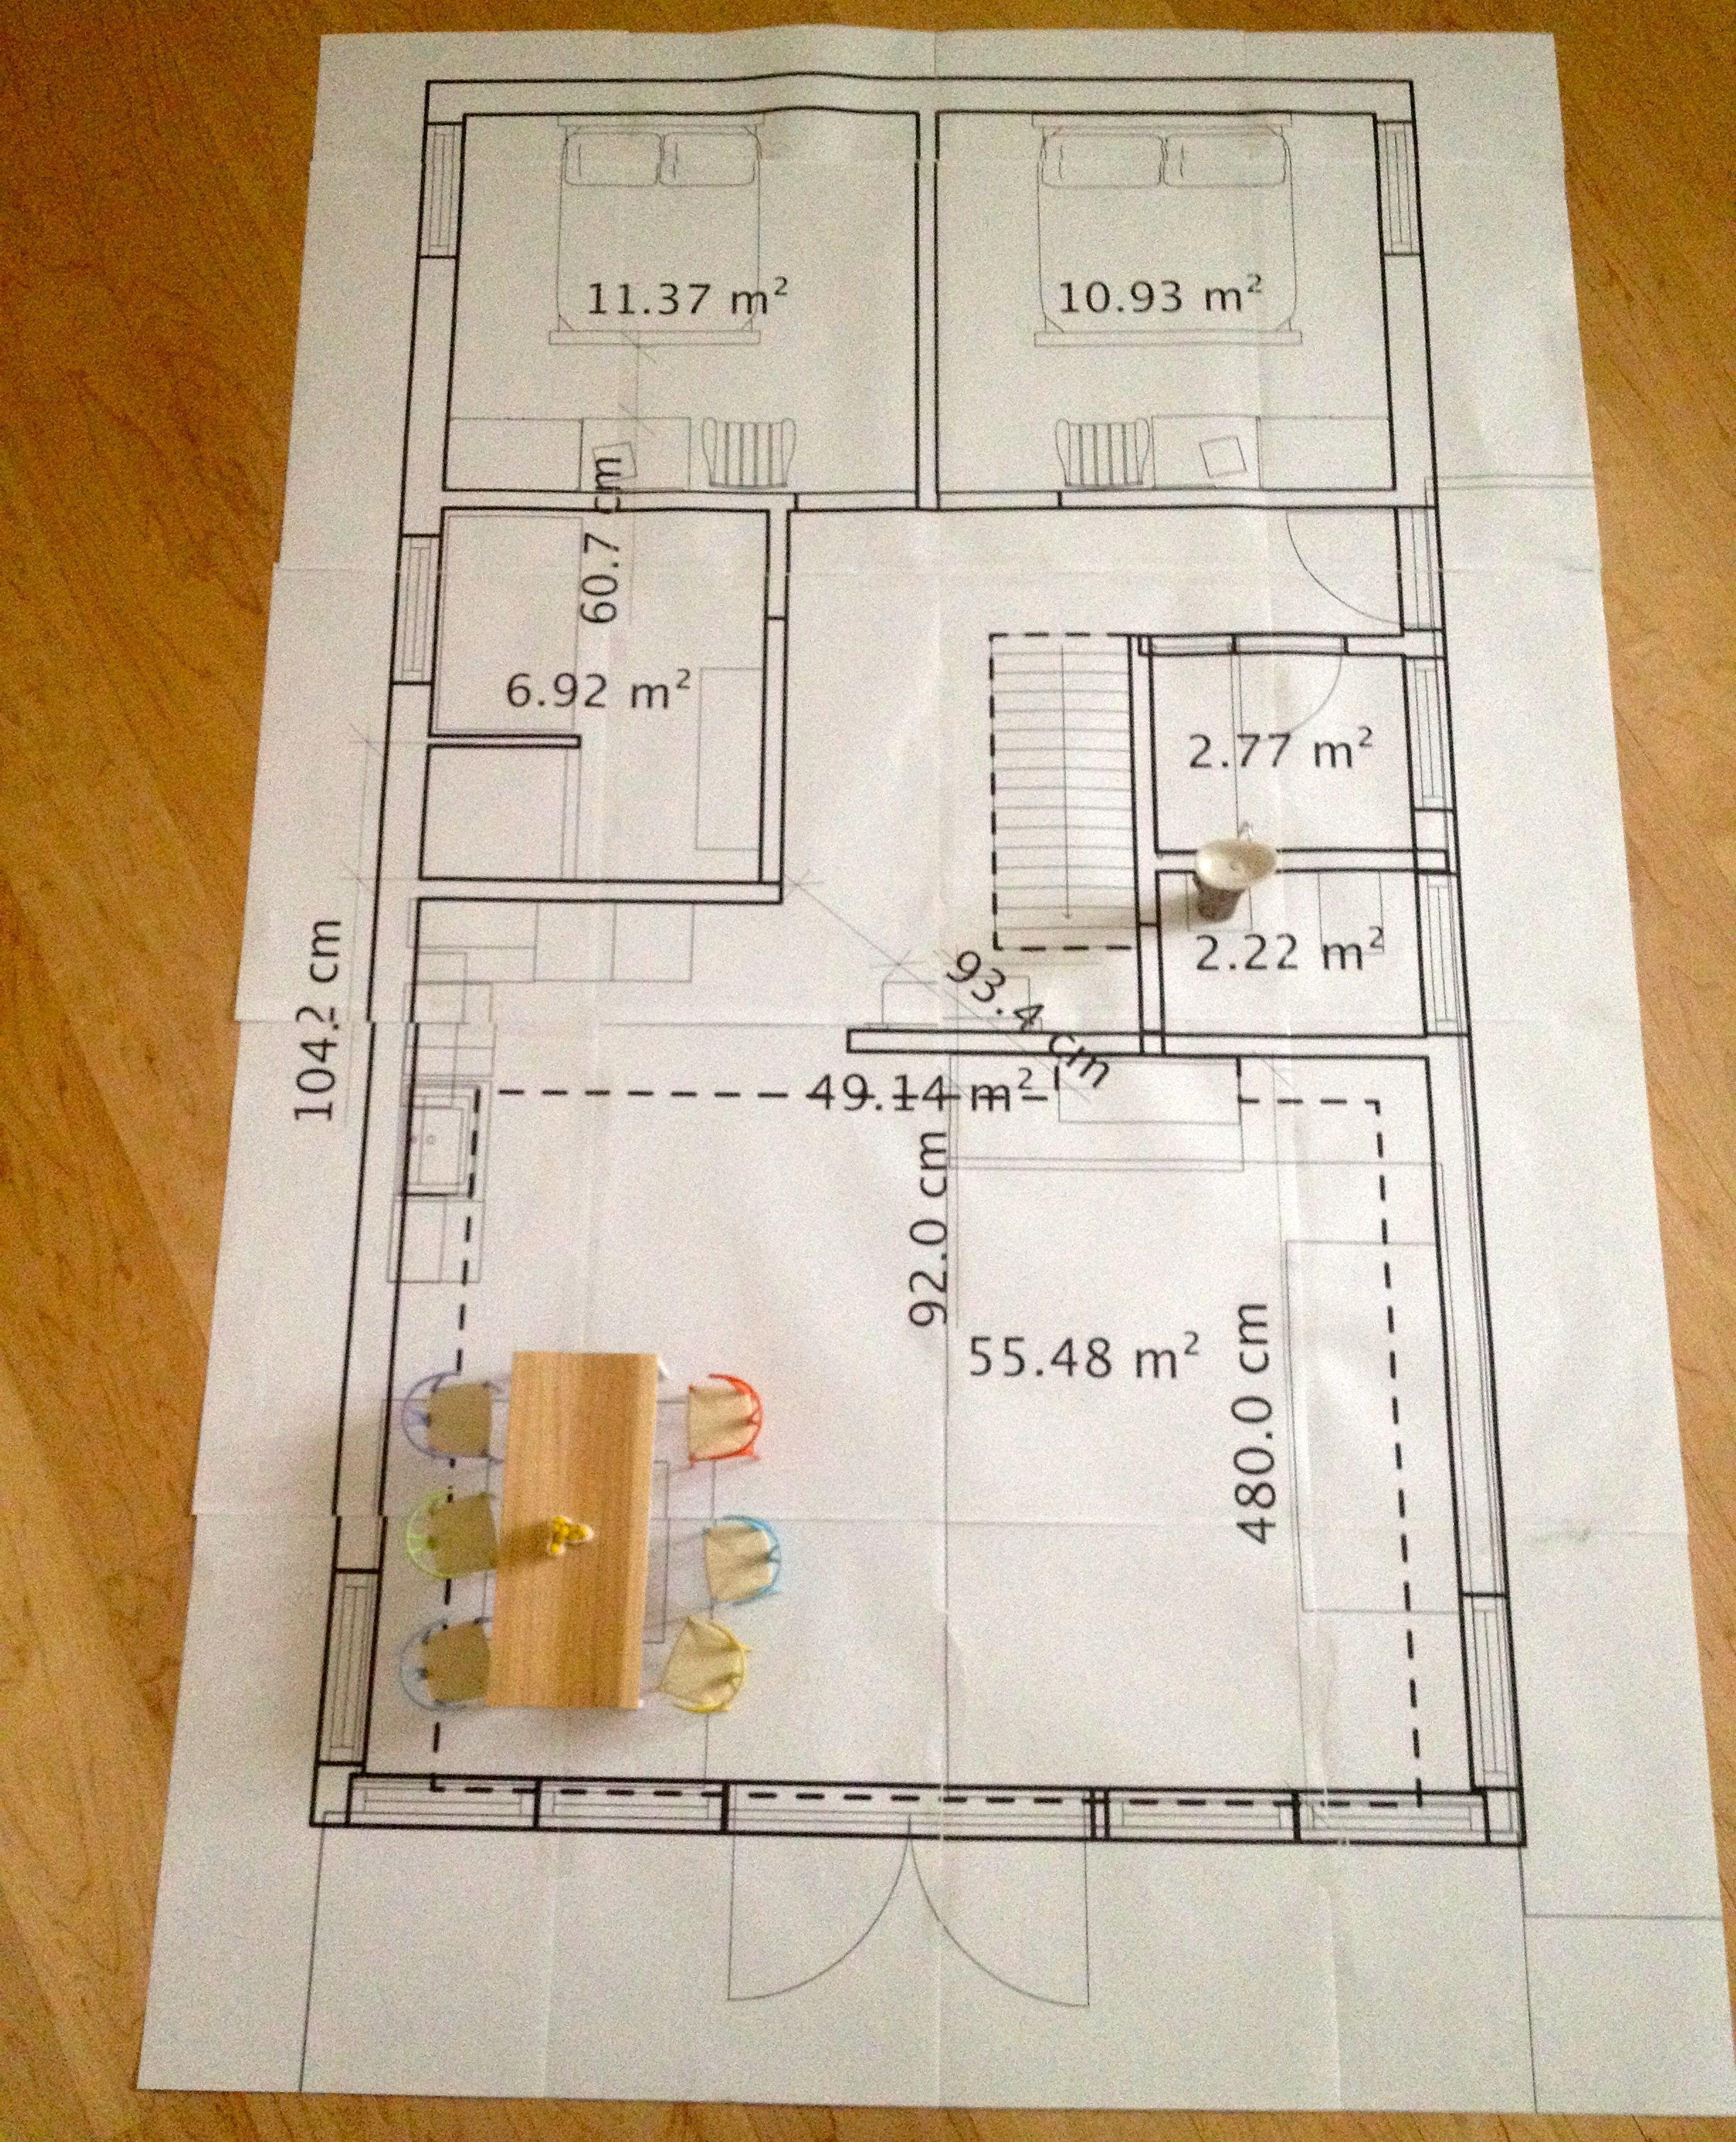 Floor Plan In 1 12 Size It Looks Gynormous Architecture Model Making Drawing Interior Architecture Model